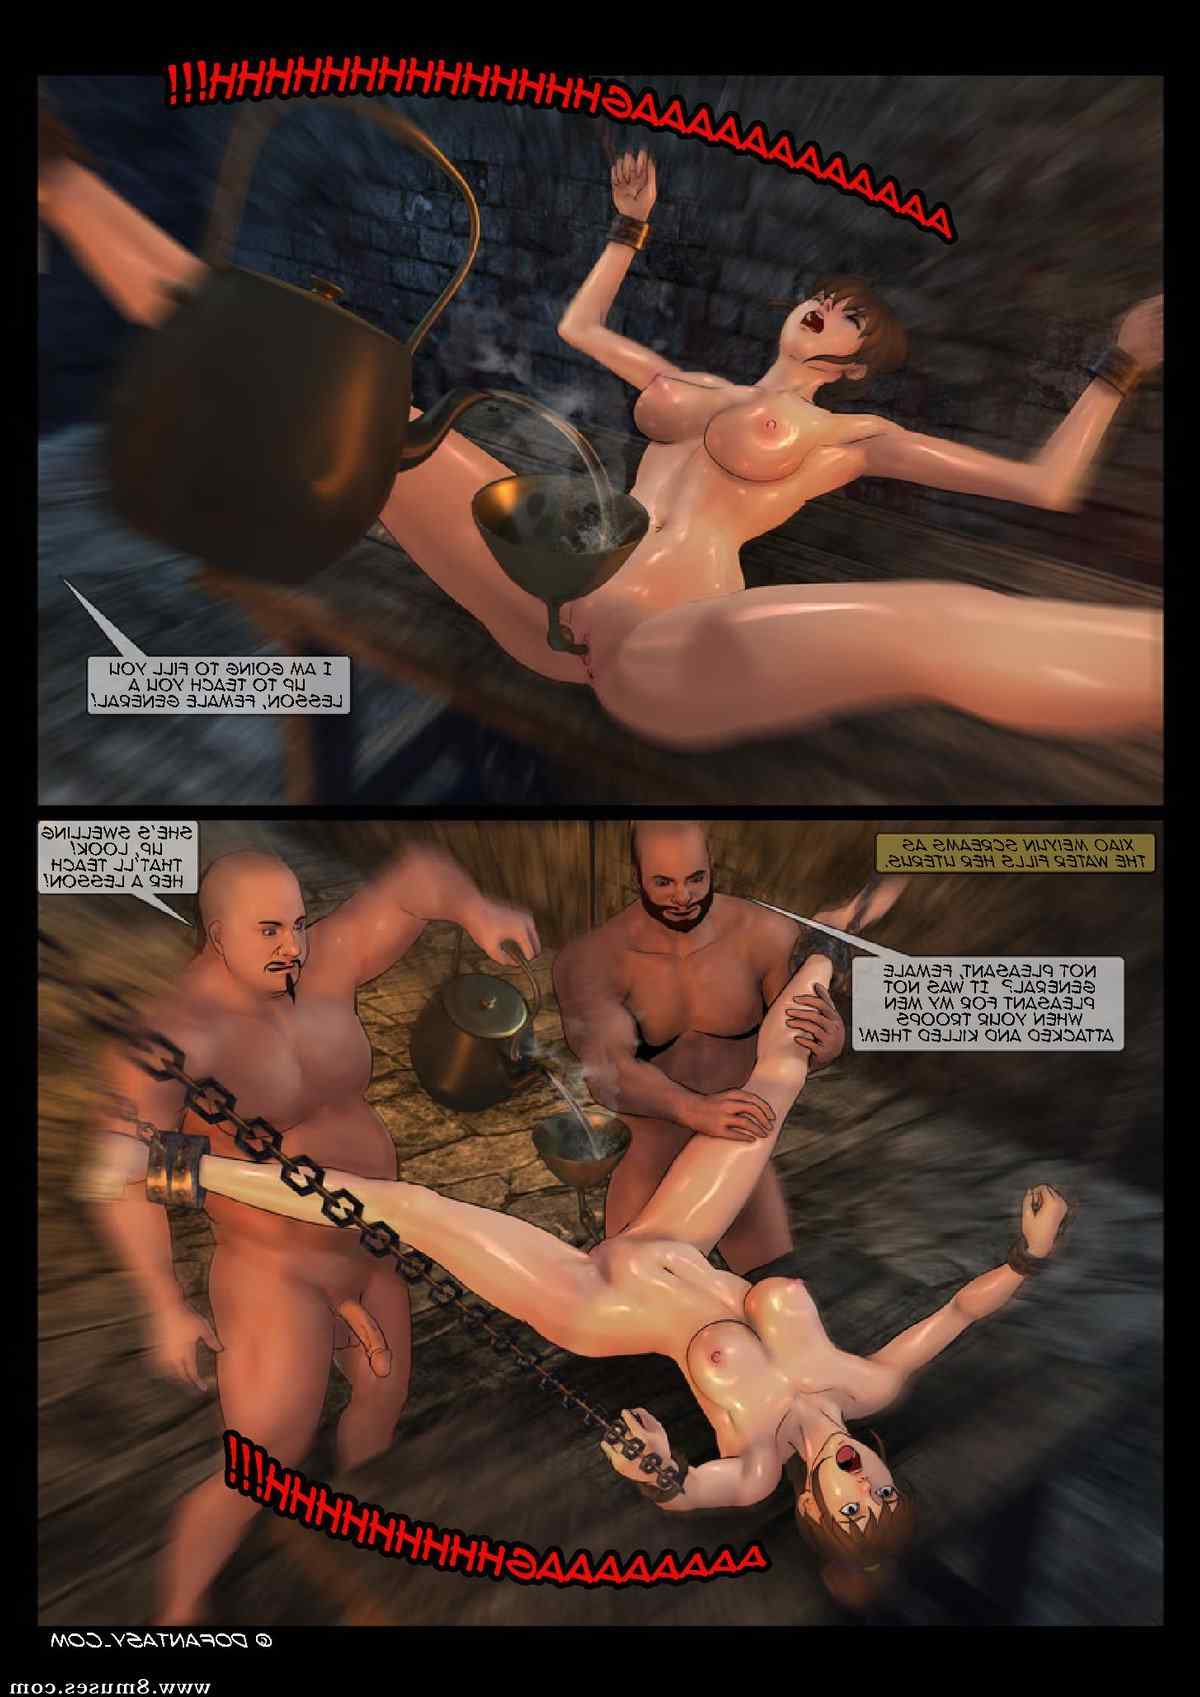 Fansadox-Comics/401-500/Fansadox-412-Feather-Female-General-2 Fansadox_412_-_Feather_-_Female_General_2__8muses_-_Sex_and_Porn_Comics_30.jpg